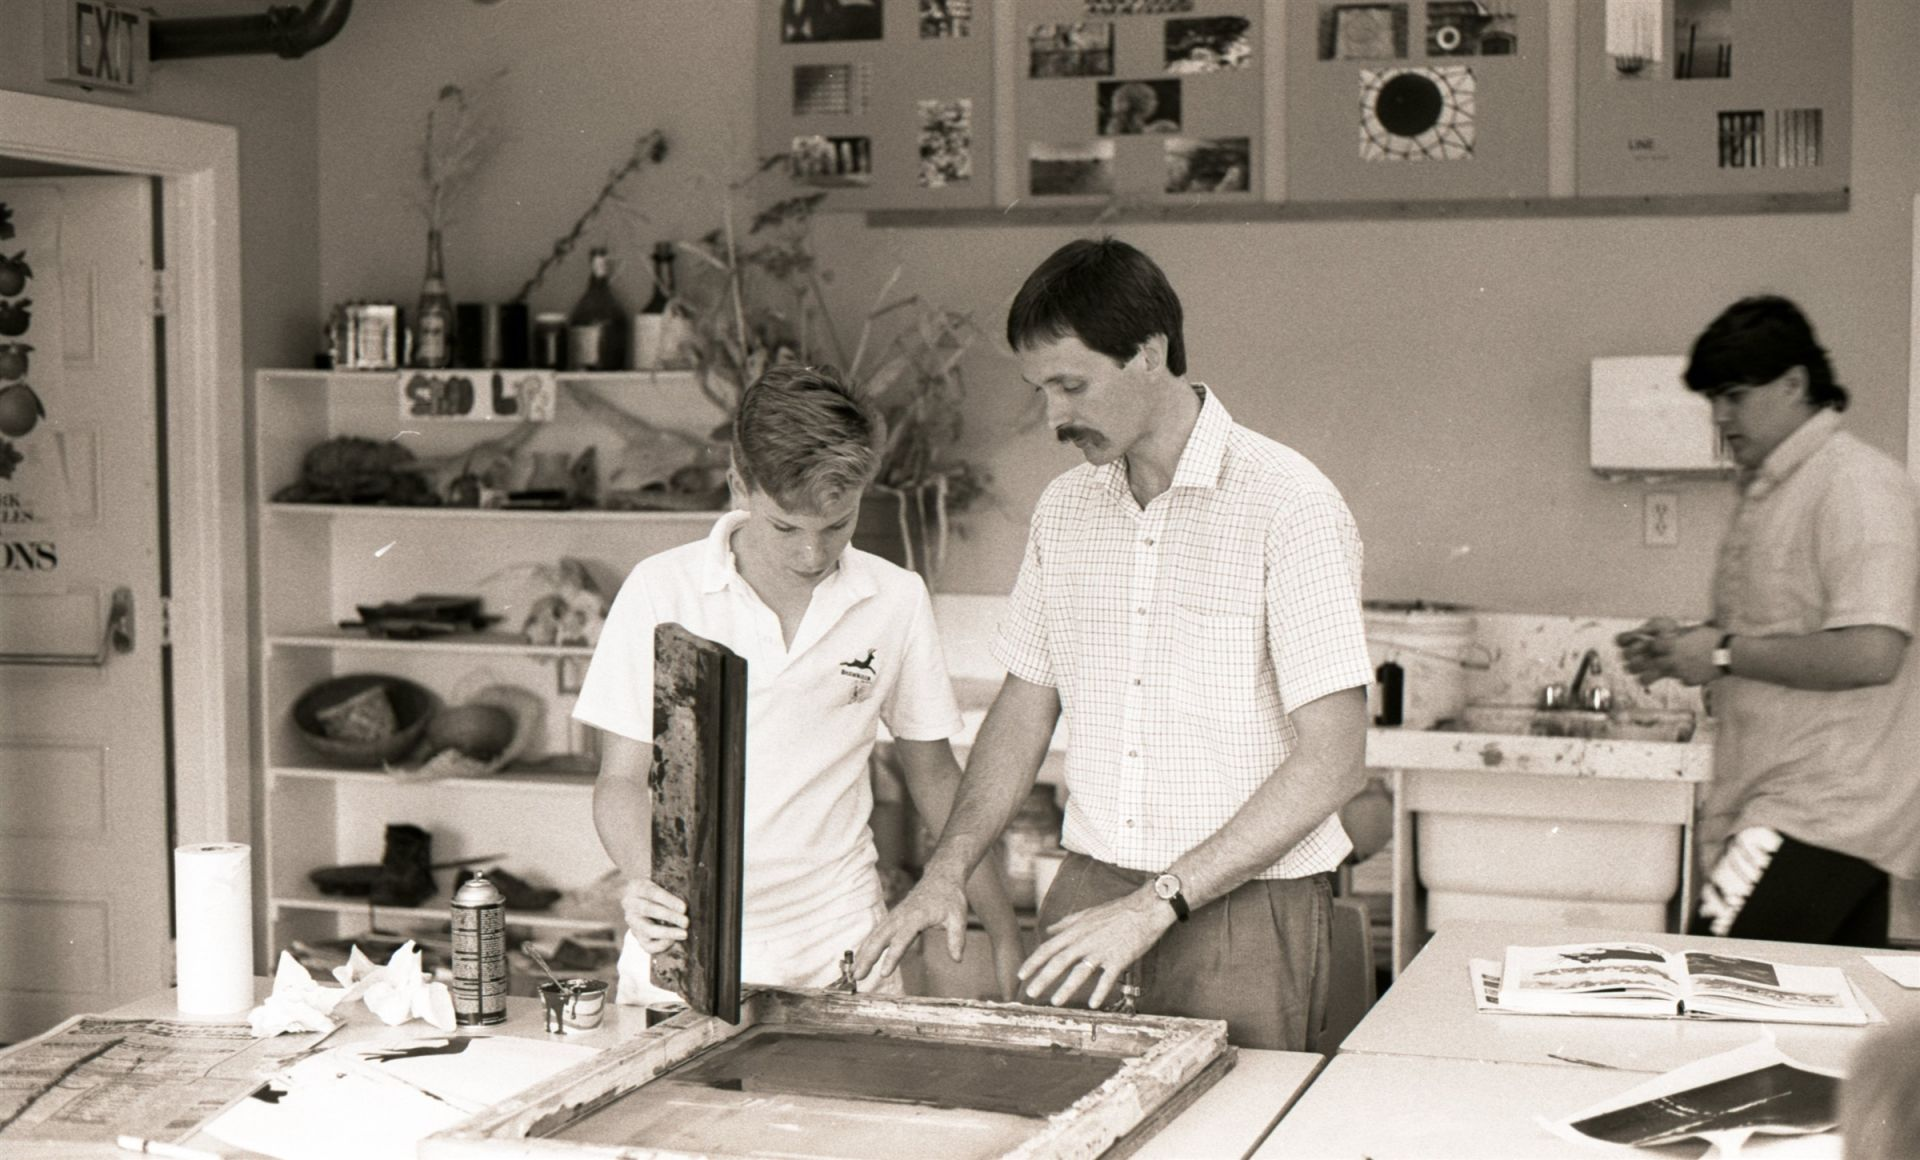 Arts & activities period, 1987